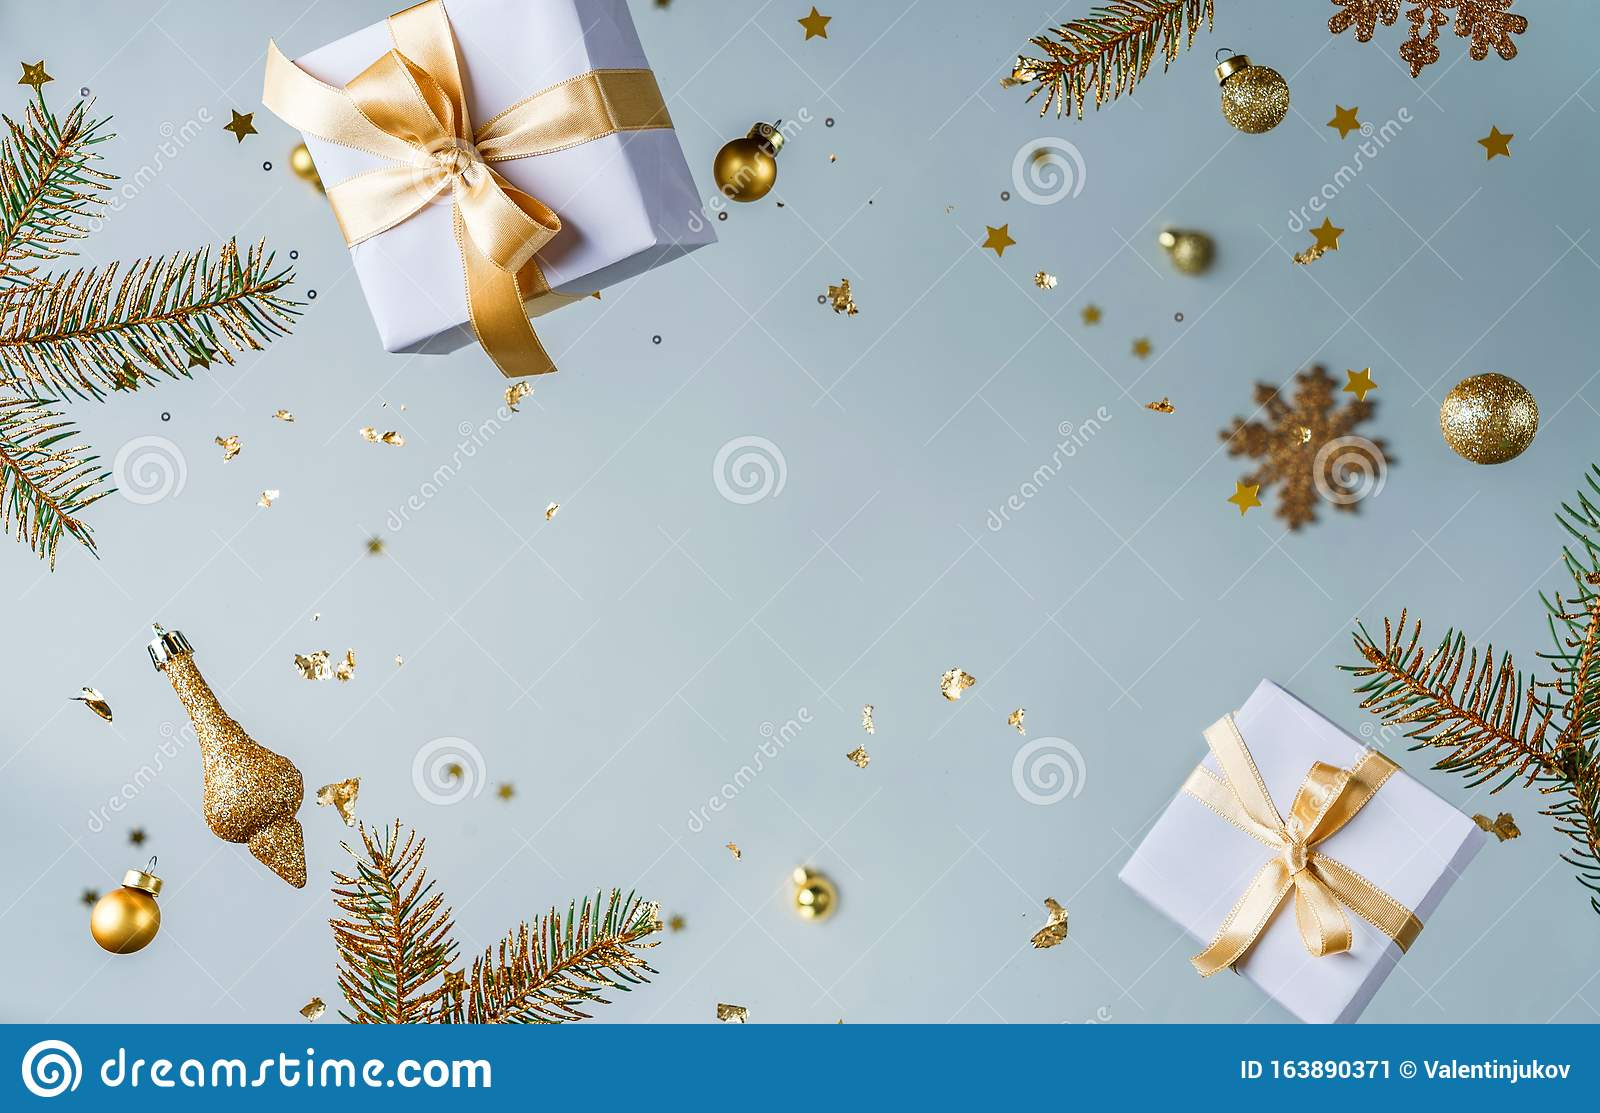 Merry Christmas and New Year background. Xmas holiday card made of flying decorations, gold fir branches, balls, snowflakes